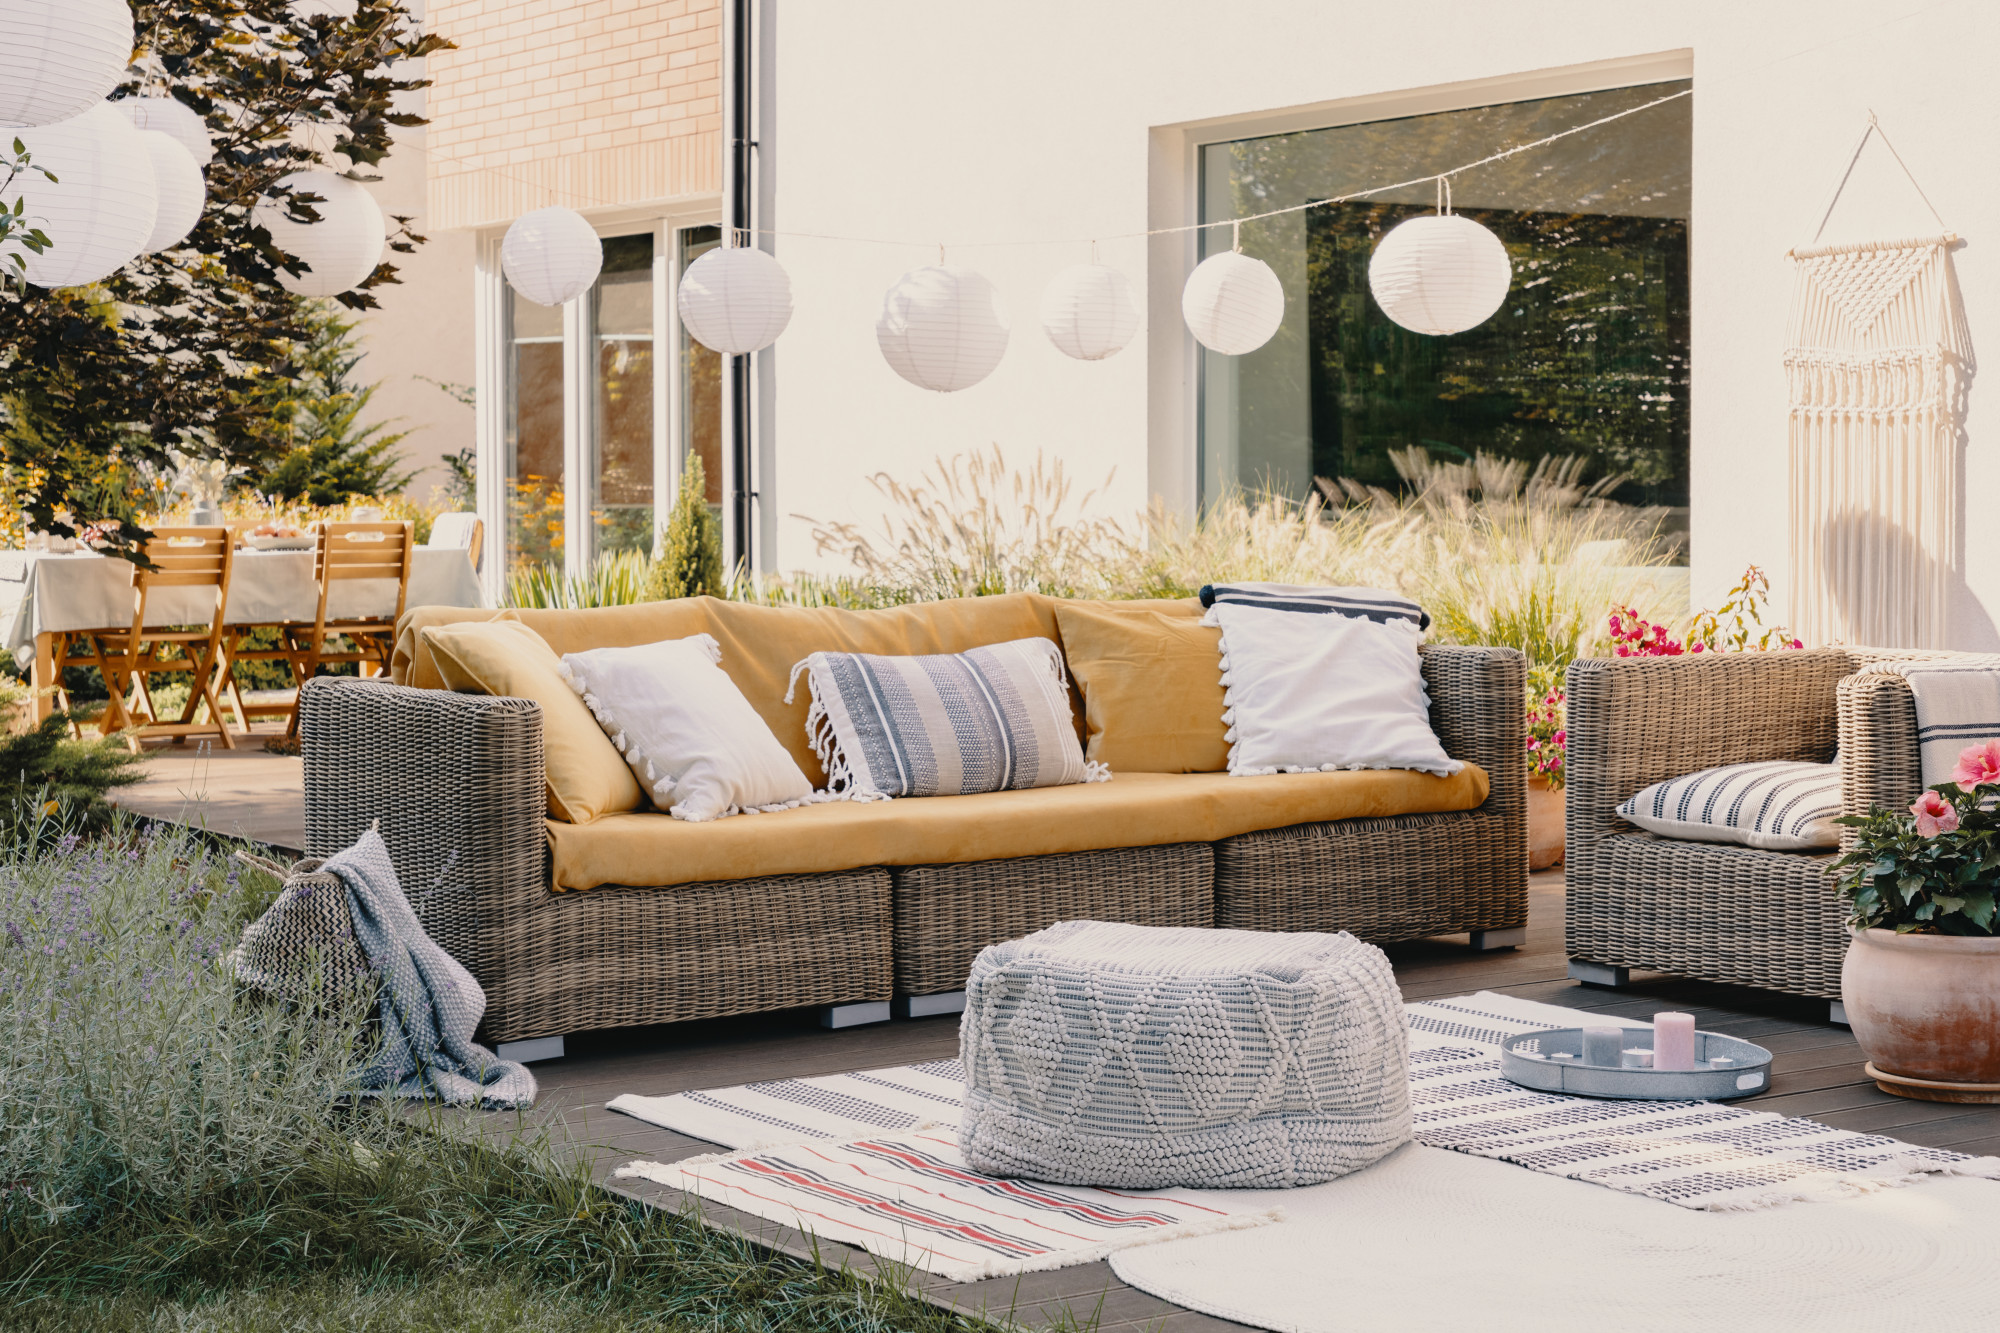 The Hottest Summer Decor Trends for 2020